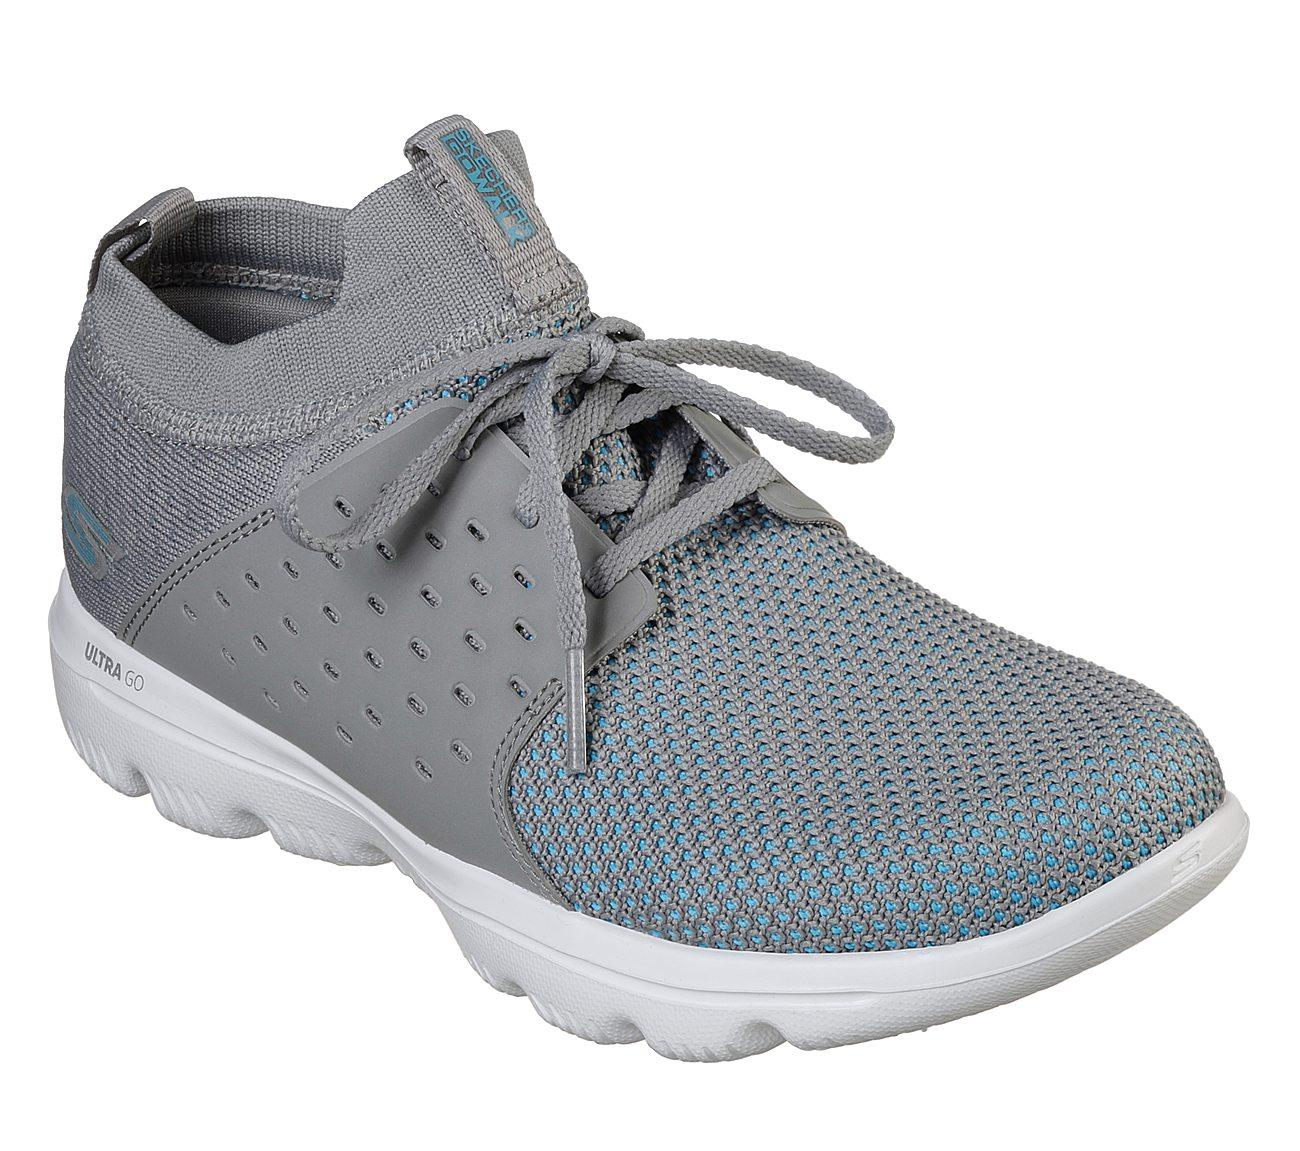 Skechers - GOwalk Evolution Ultra Sepatu Sneakers Wanita - Abu-Abu 9de64d88be